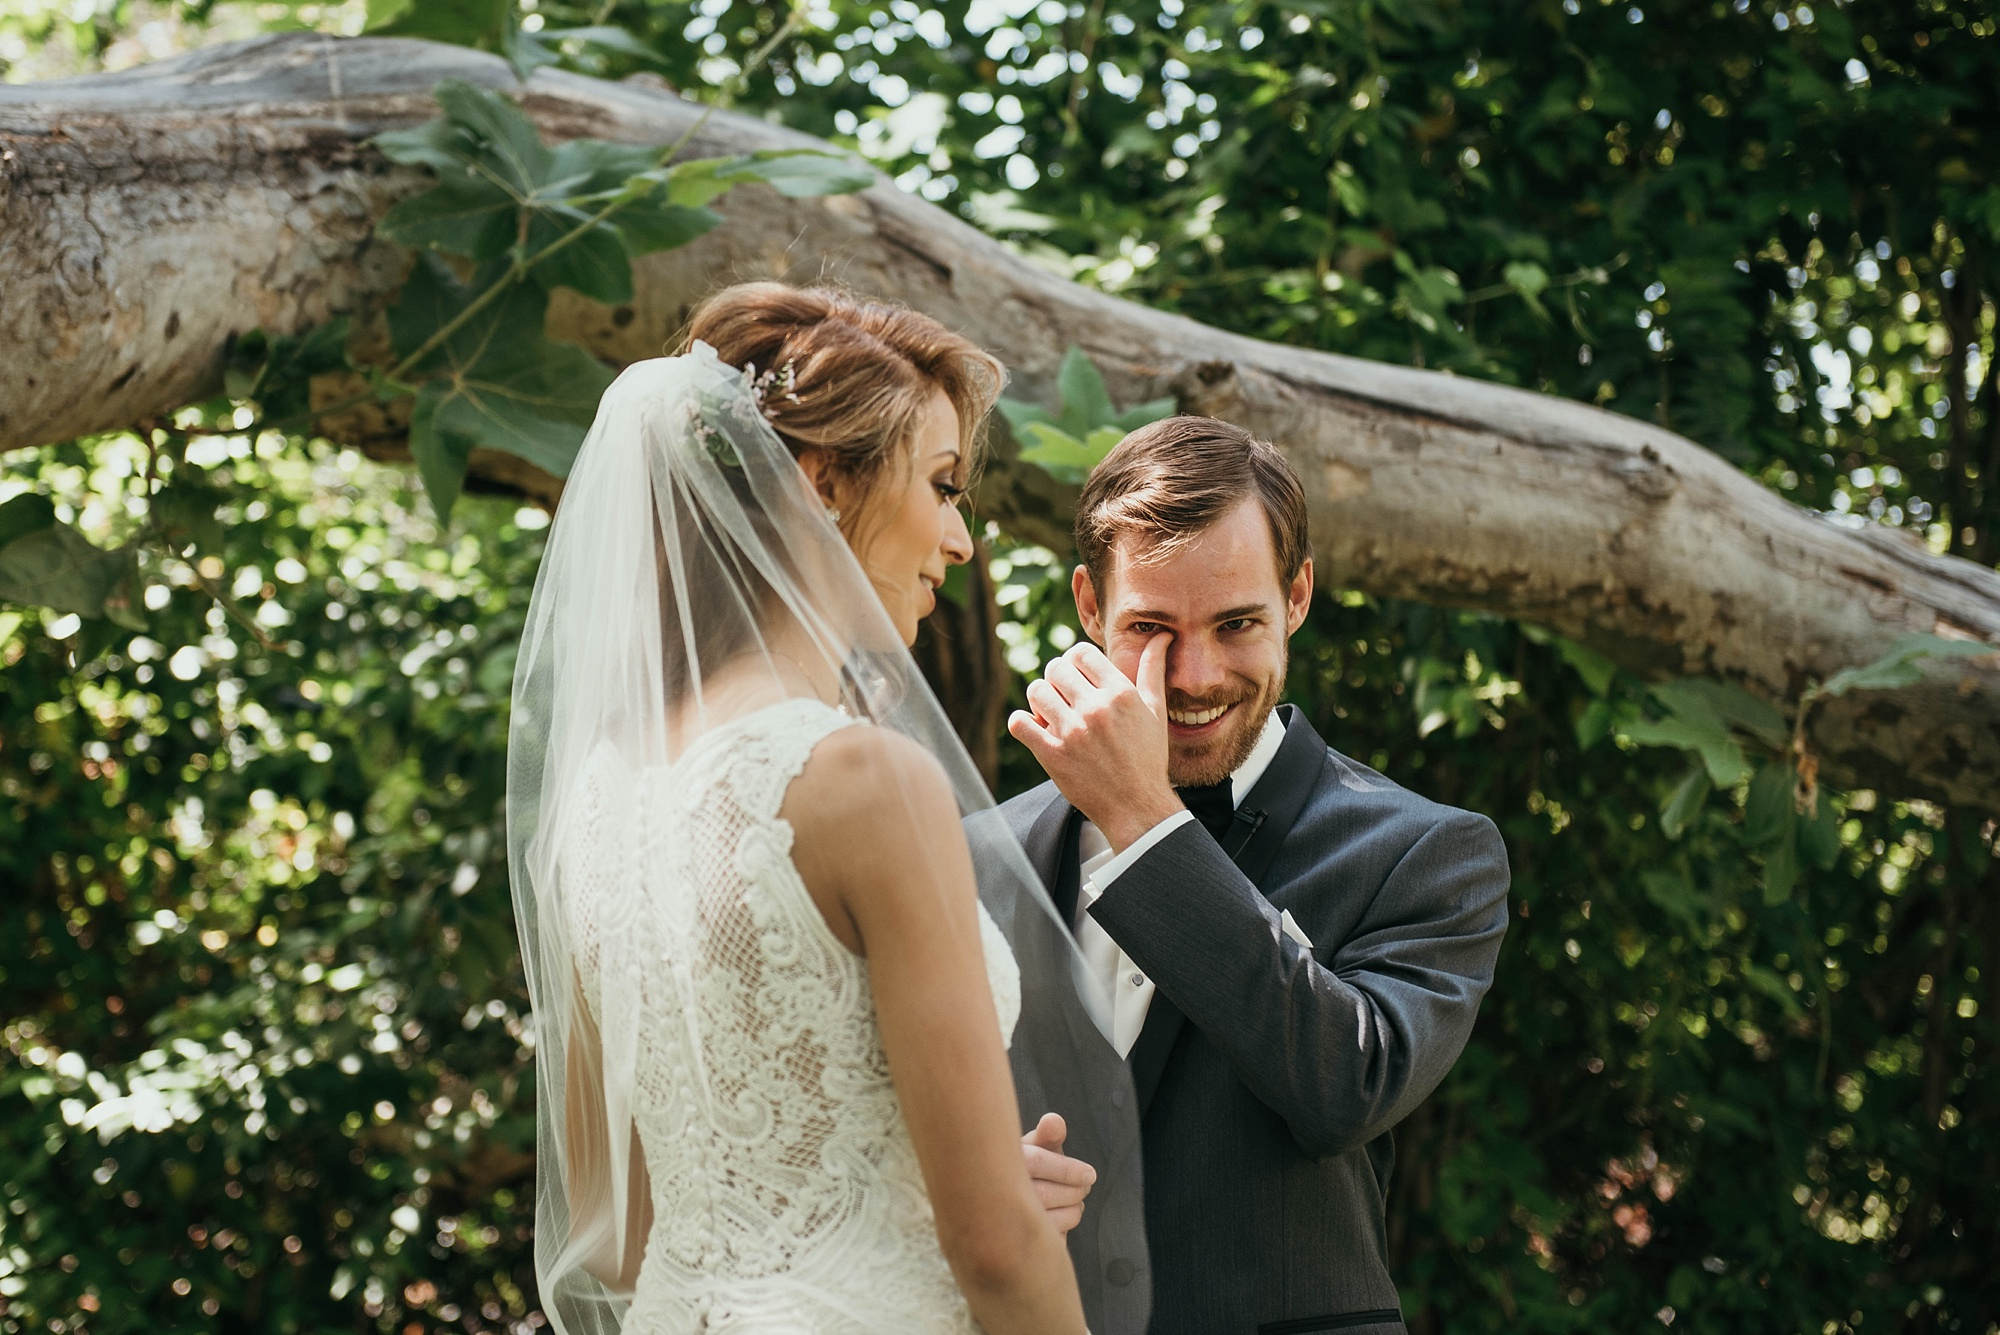 Bride and groom see each other in first look before ceremony at Temecula creek inn wedding